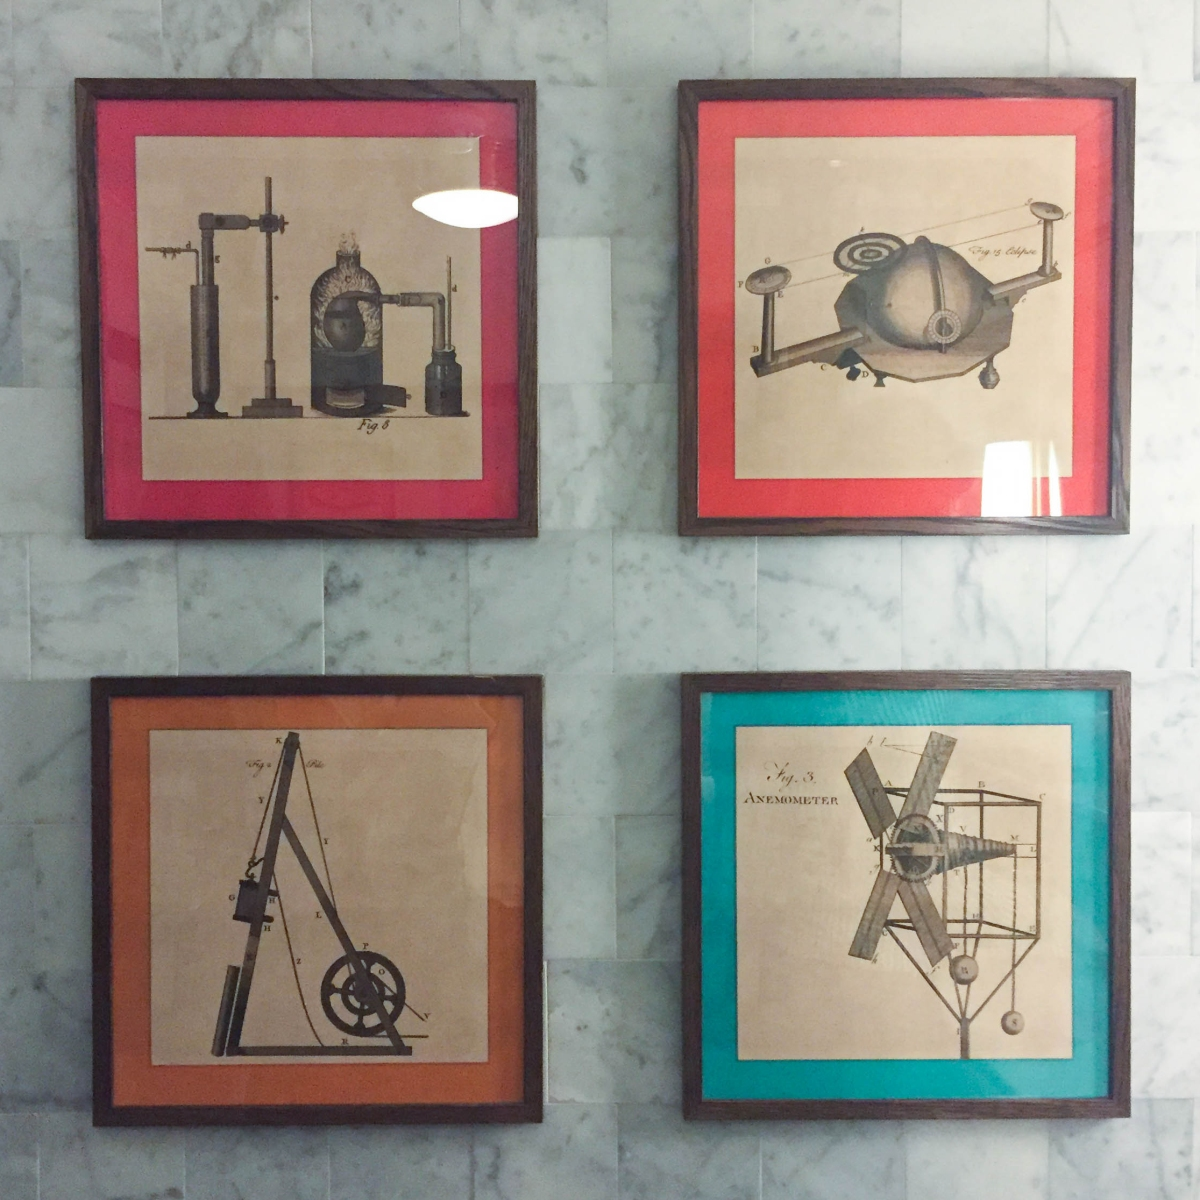 A photograph of four drawings of scientific instruments